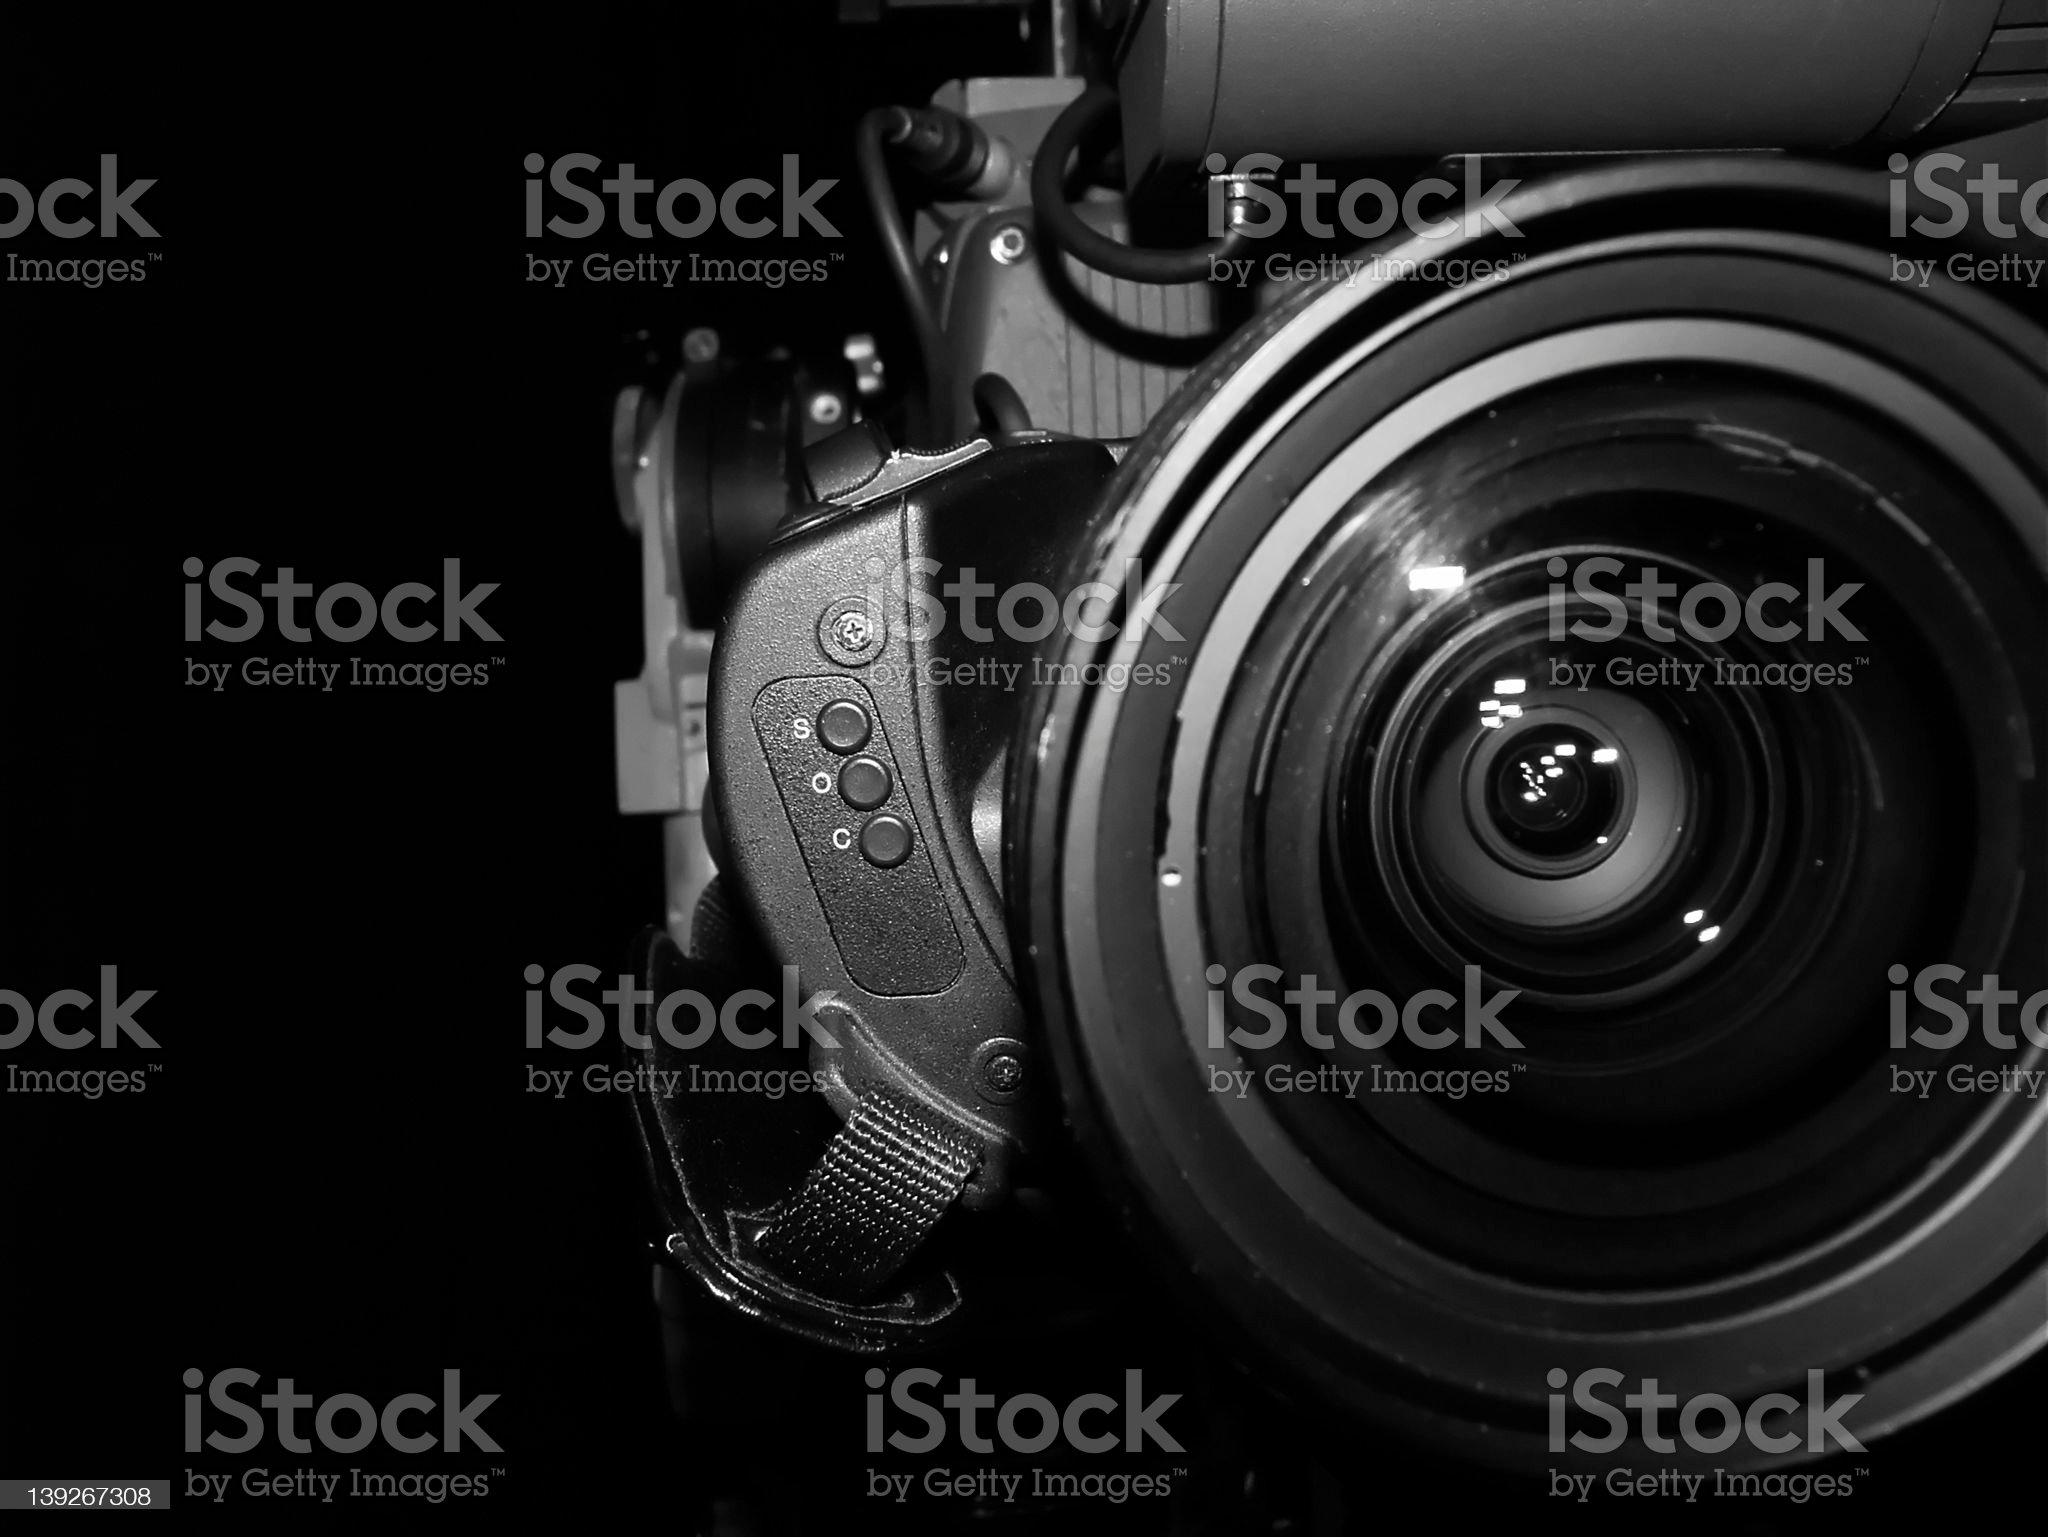 lights, camera, action royalty-free stock photo